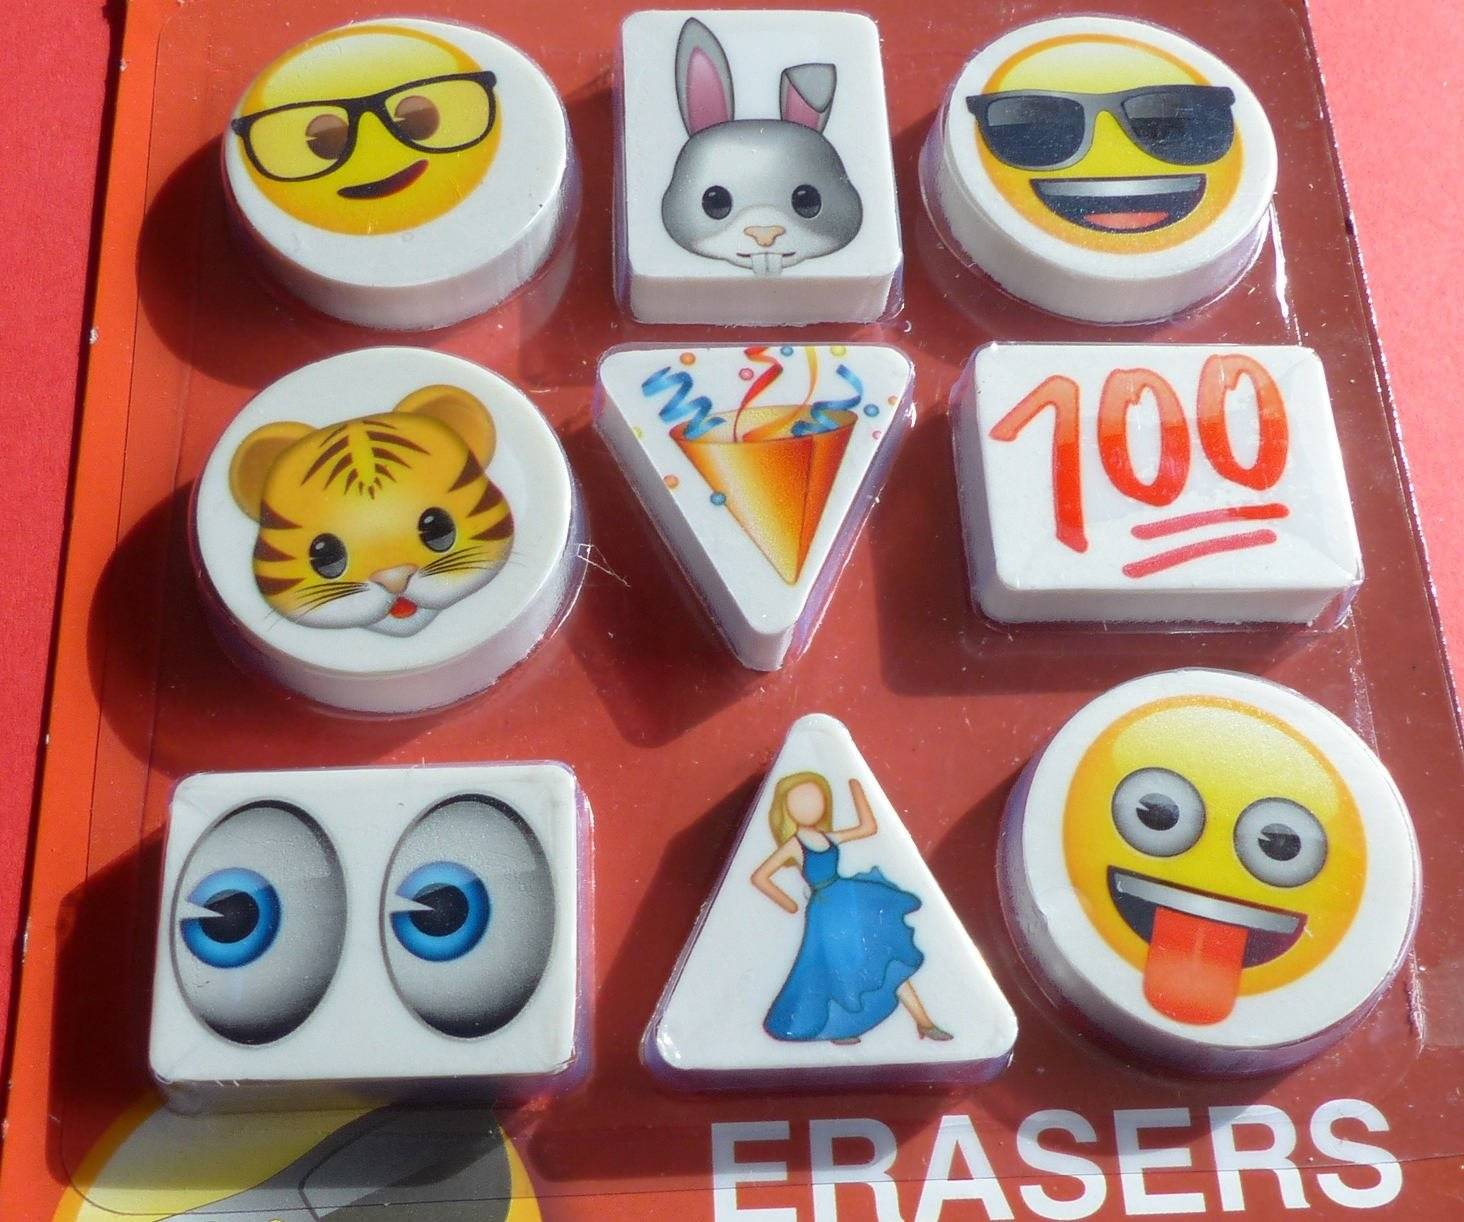 9 gommes emoji emoticones triangle rond rectangle erasers the iconic brand smiley